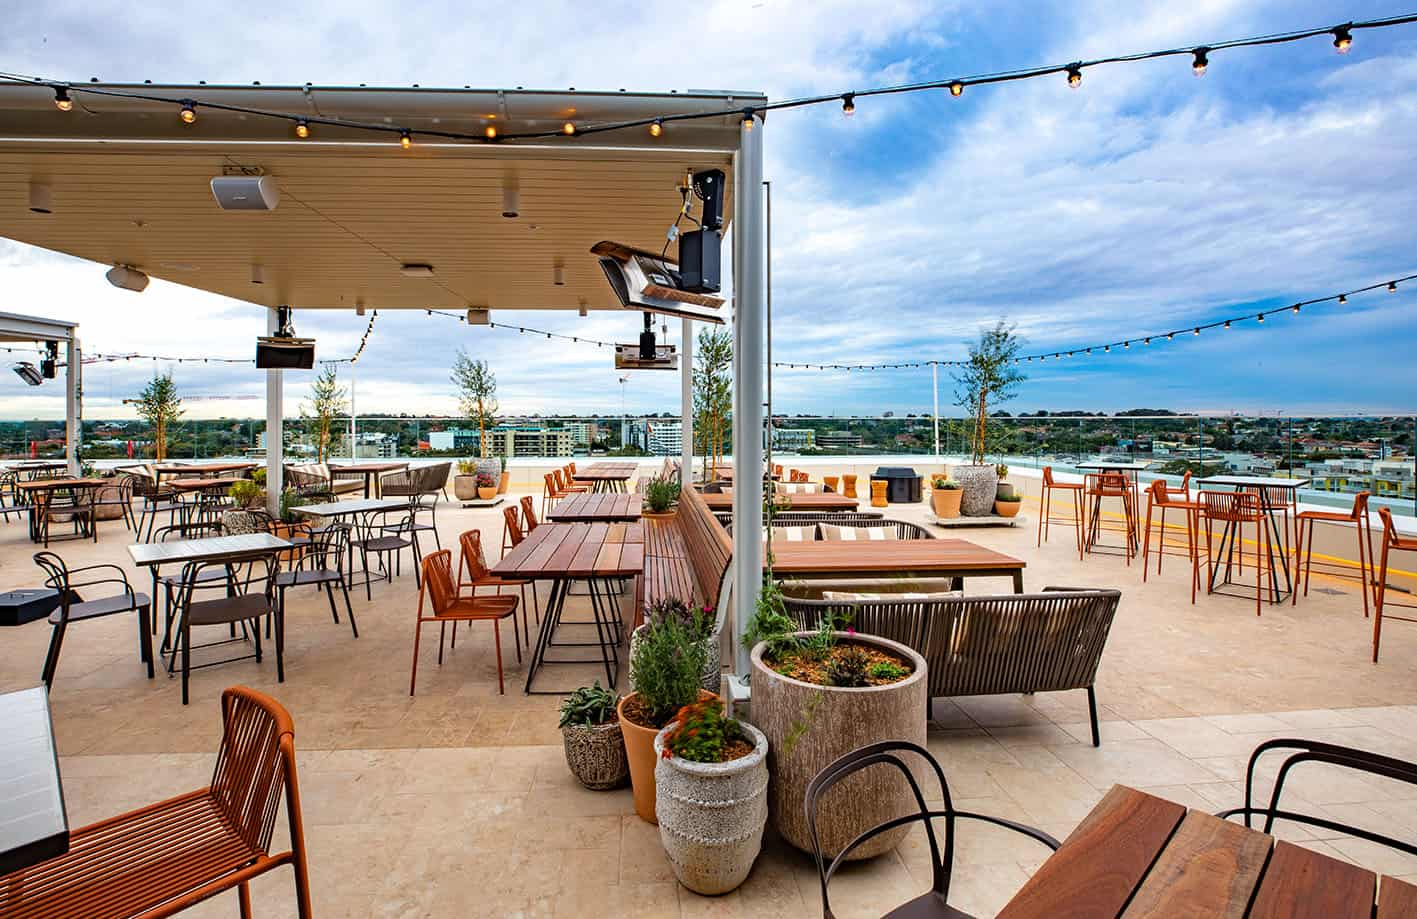 New rooftop bar at one of Australia's top clubs